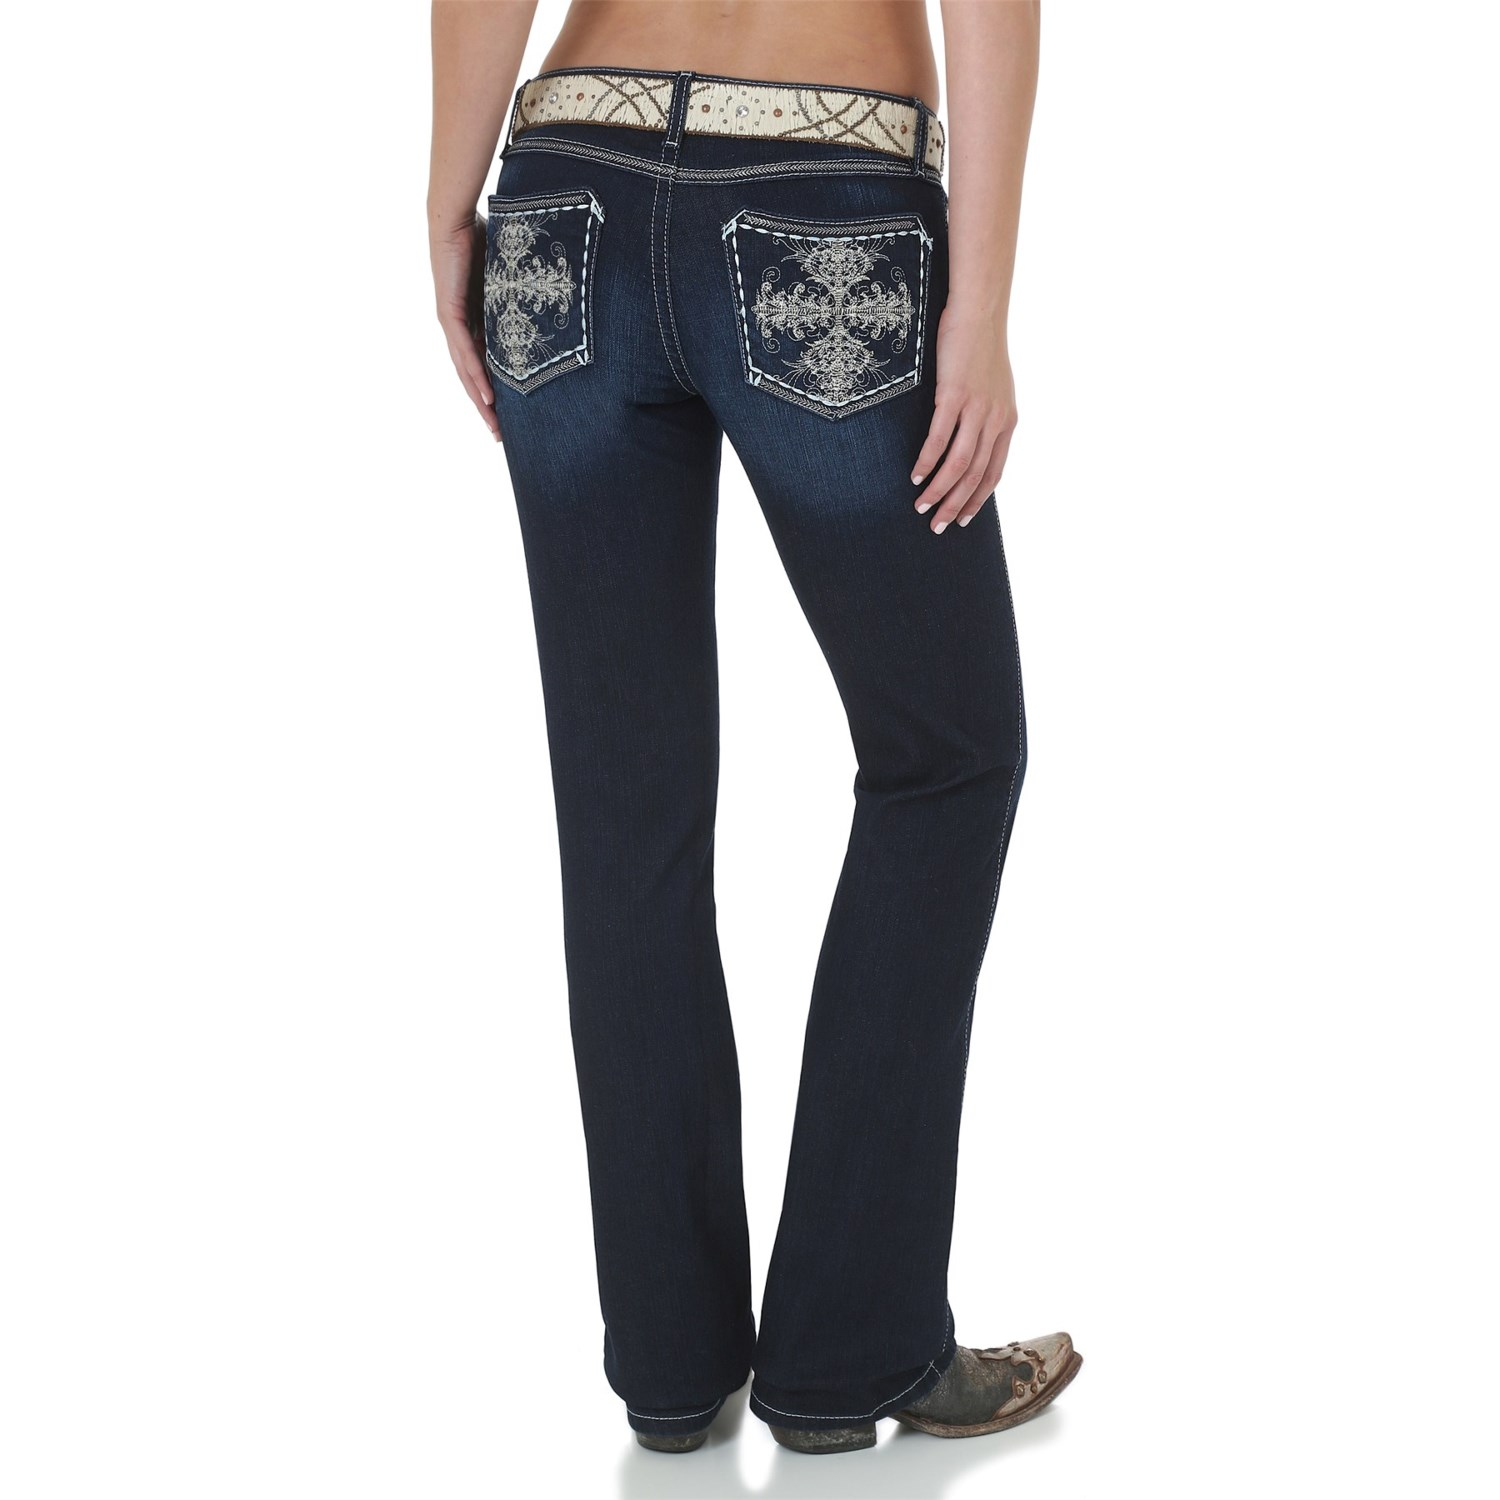 Low Rise, Ultra Low Rise or Extreme Low Rise, Get Custom Jeans made as per your measurements and your style, Sizes are just numbers for us. Enter the measurements including the front rise you want, you will have your jeans custom made and home delivered within 2 to 3 weeks.